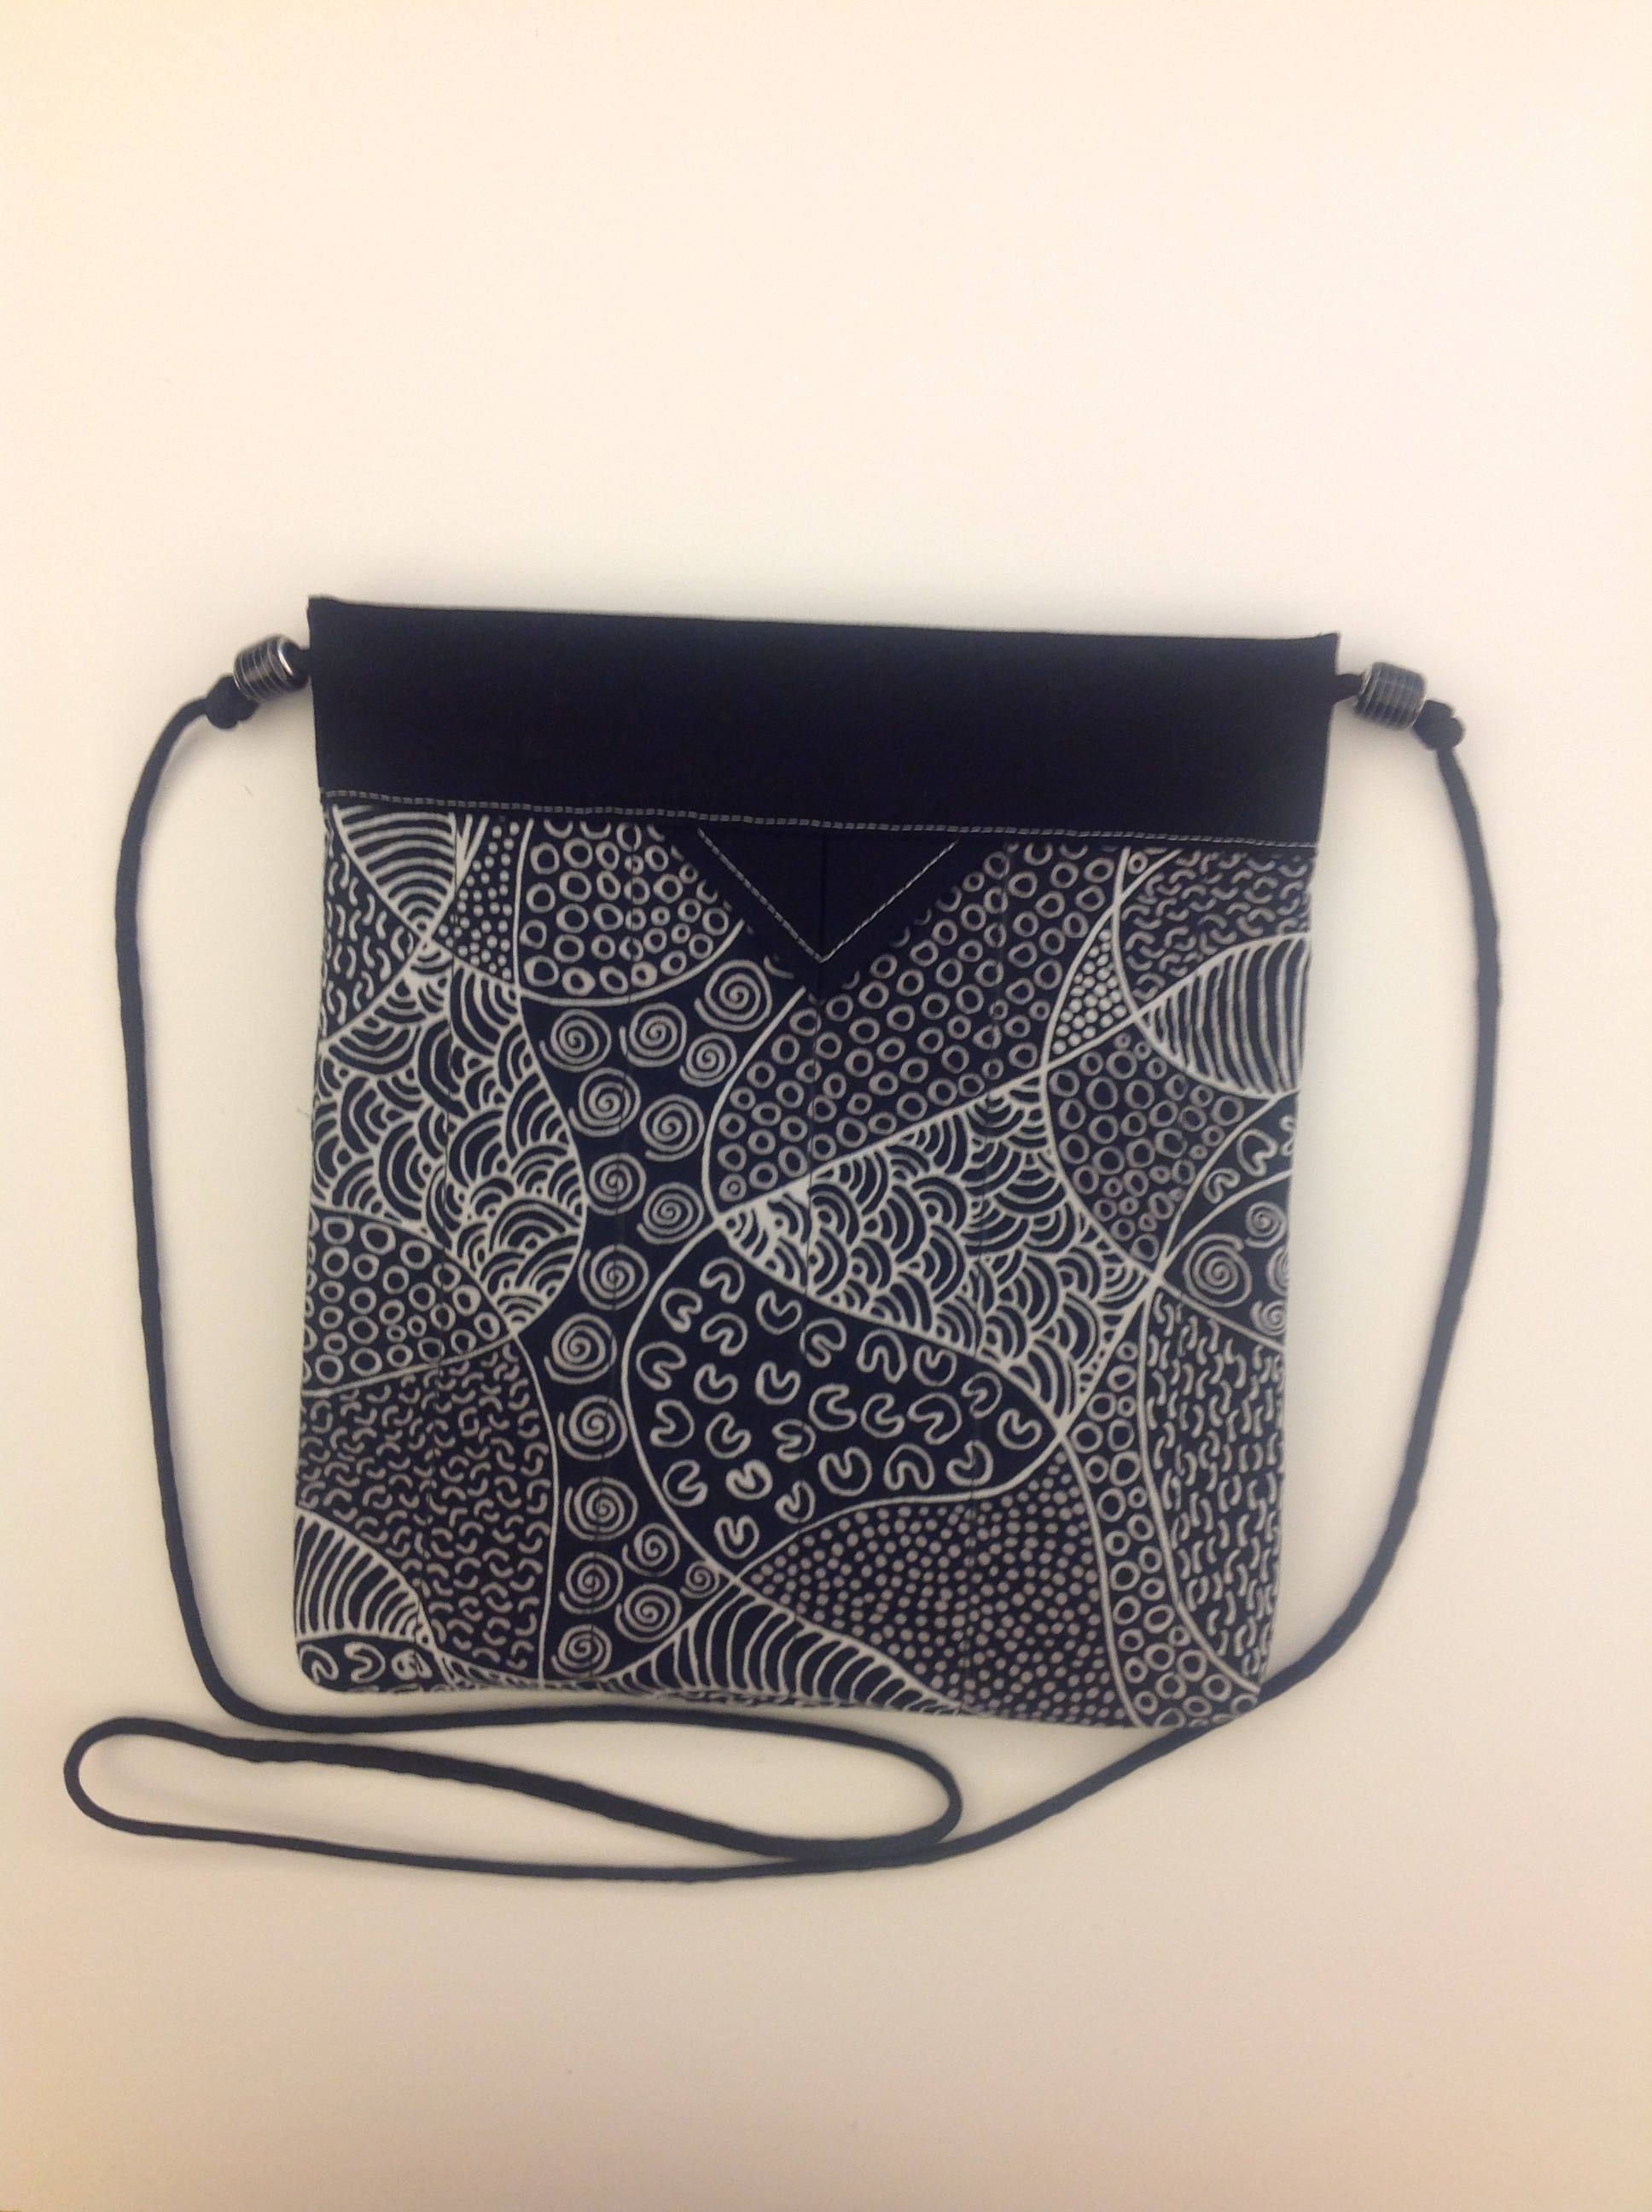 Black And White Quilted Fabric Snap Bag Purse Handbag Handmade 8 X 1 2 By Marvelsbymarilyn On Etsy